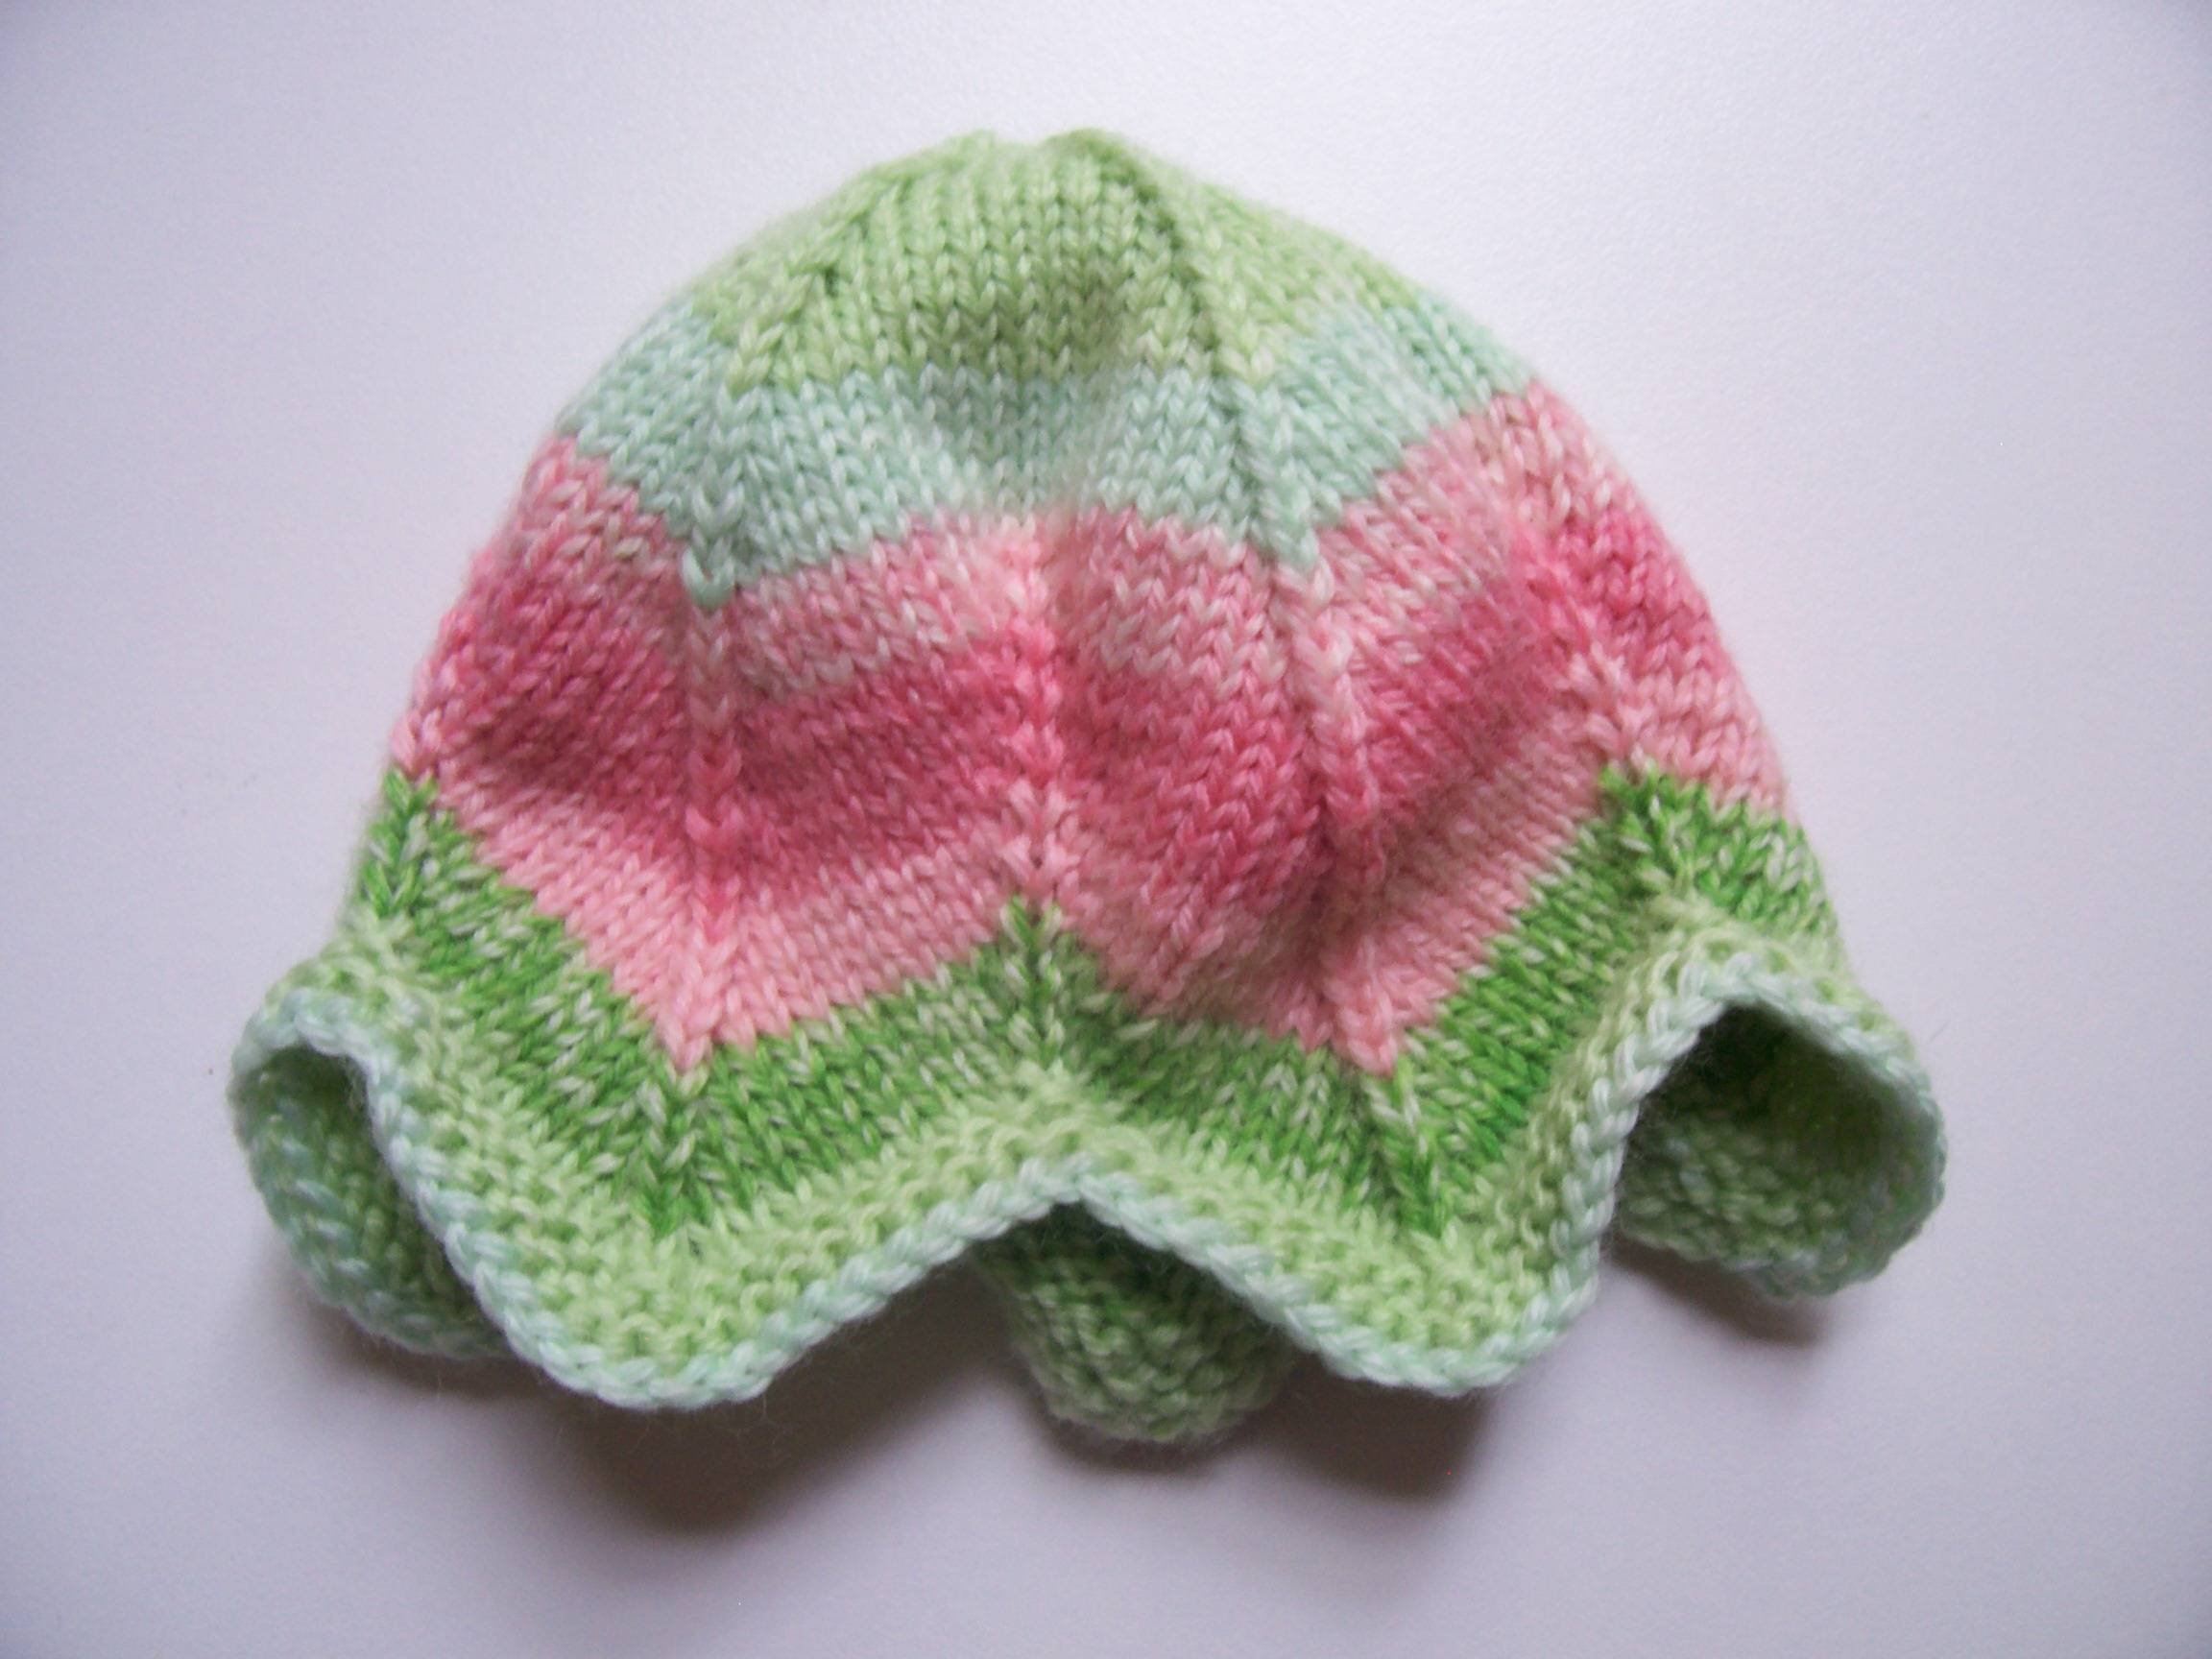 Preemie Knitting Patterns Free : Tulip Preemie Hat a k n i t i c a